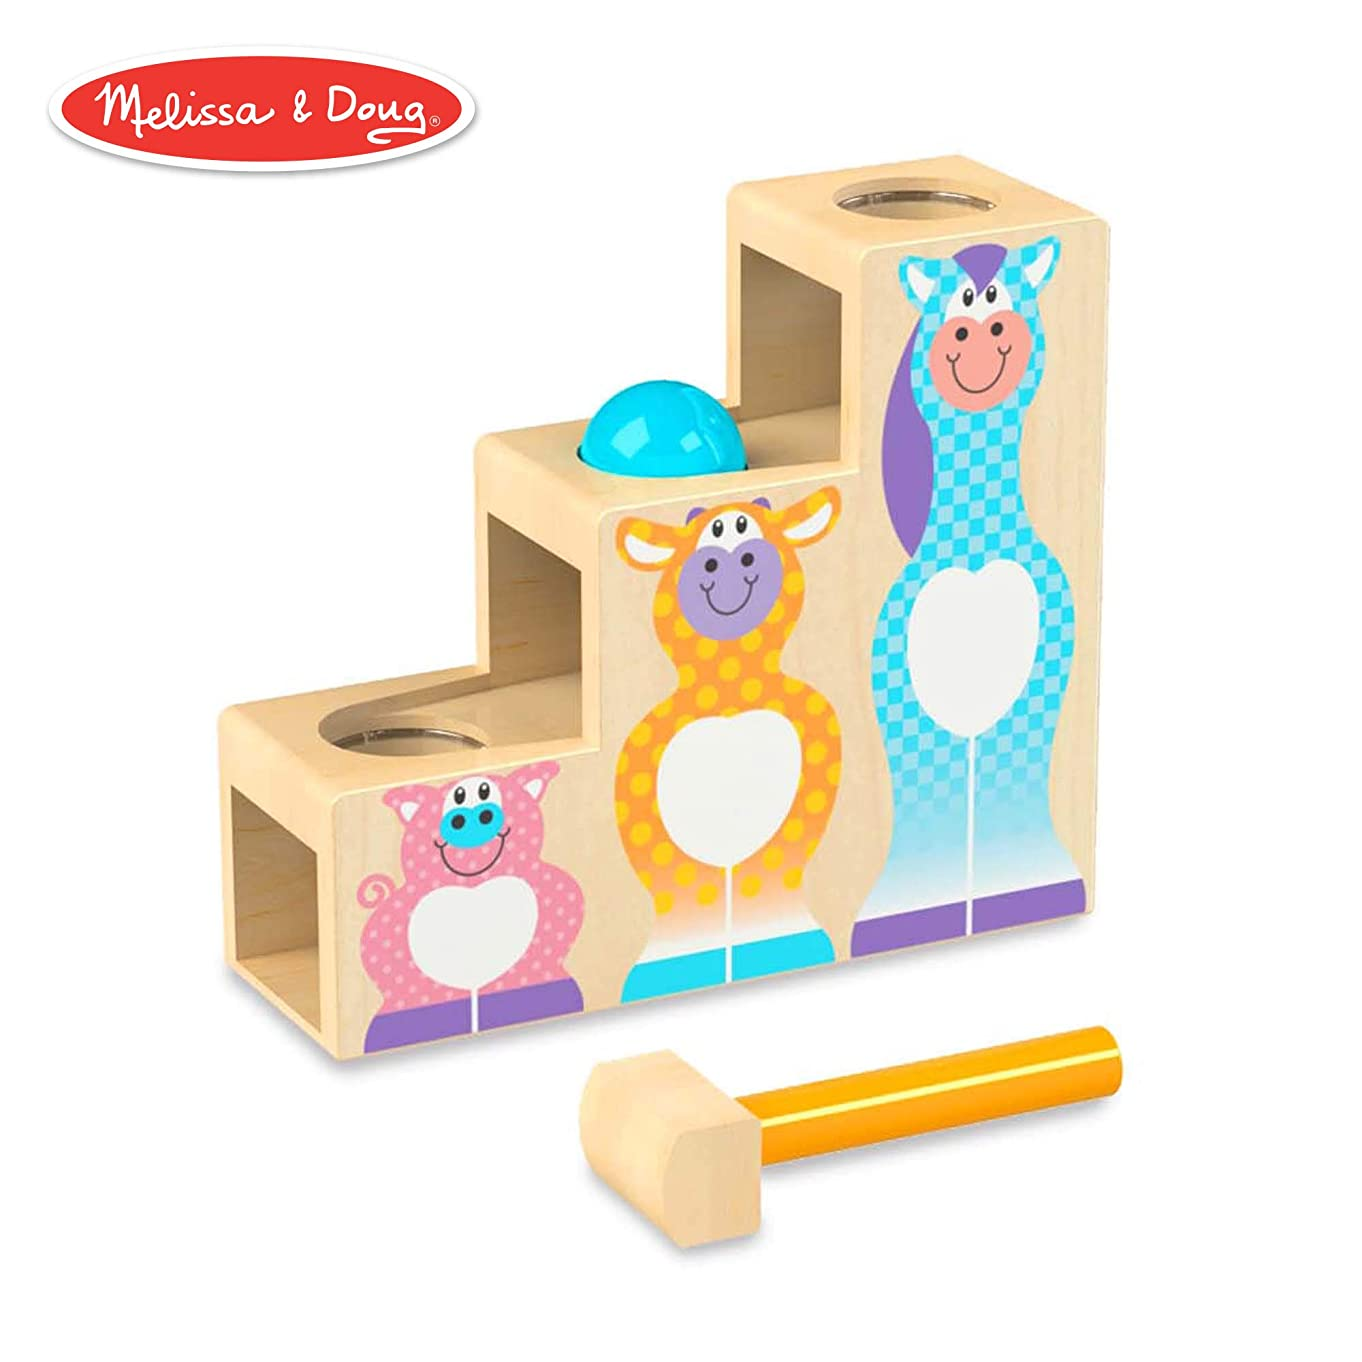 Melissa & Doug First Play Pound & Roll Stairs Wooden 3 Piece Baby Kids Hammer & Ball Toy